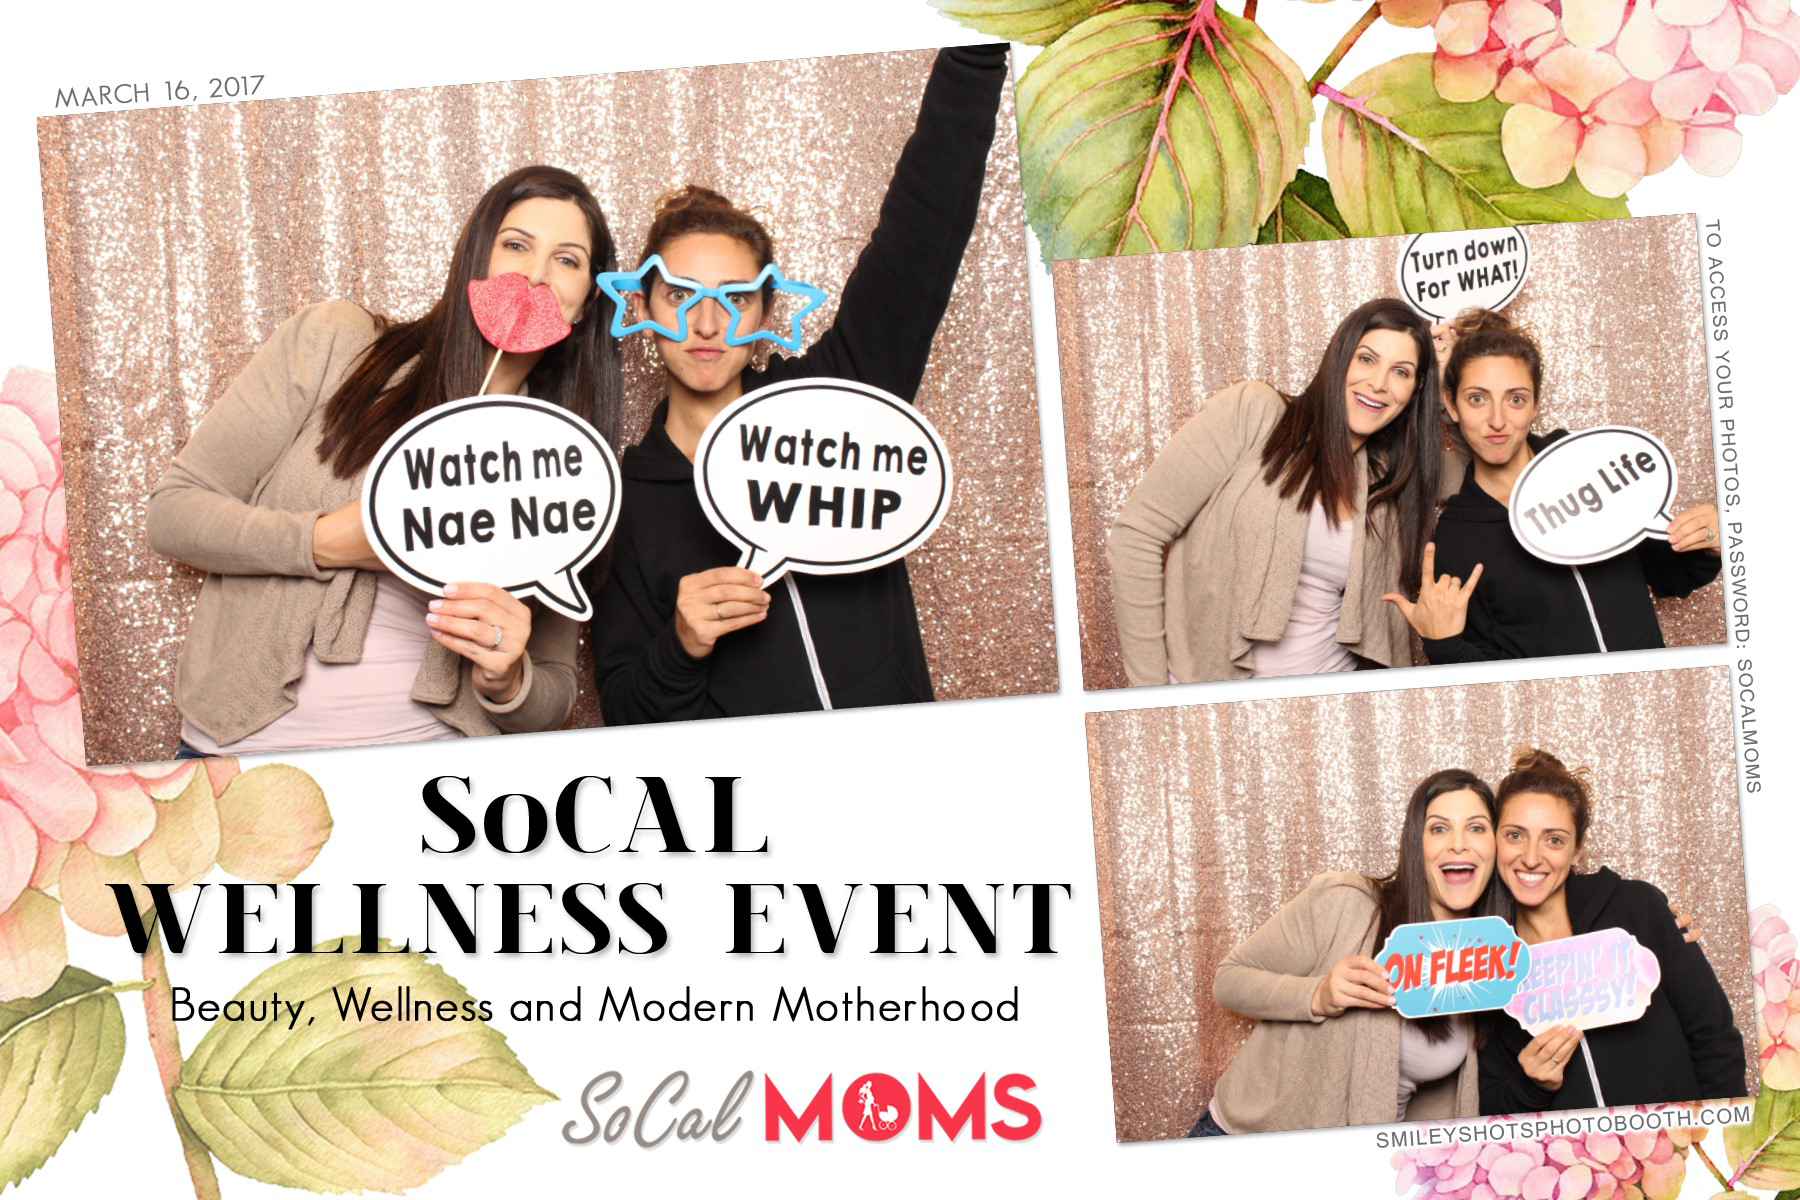 Socal Wellness Event Socal Moms Smiley Shots Photo Booth Photobooth (23).png